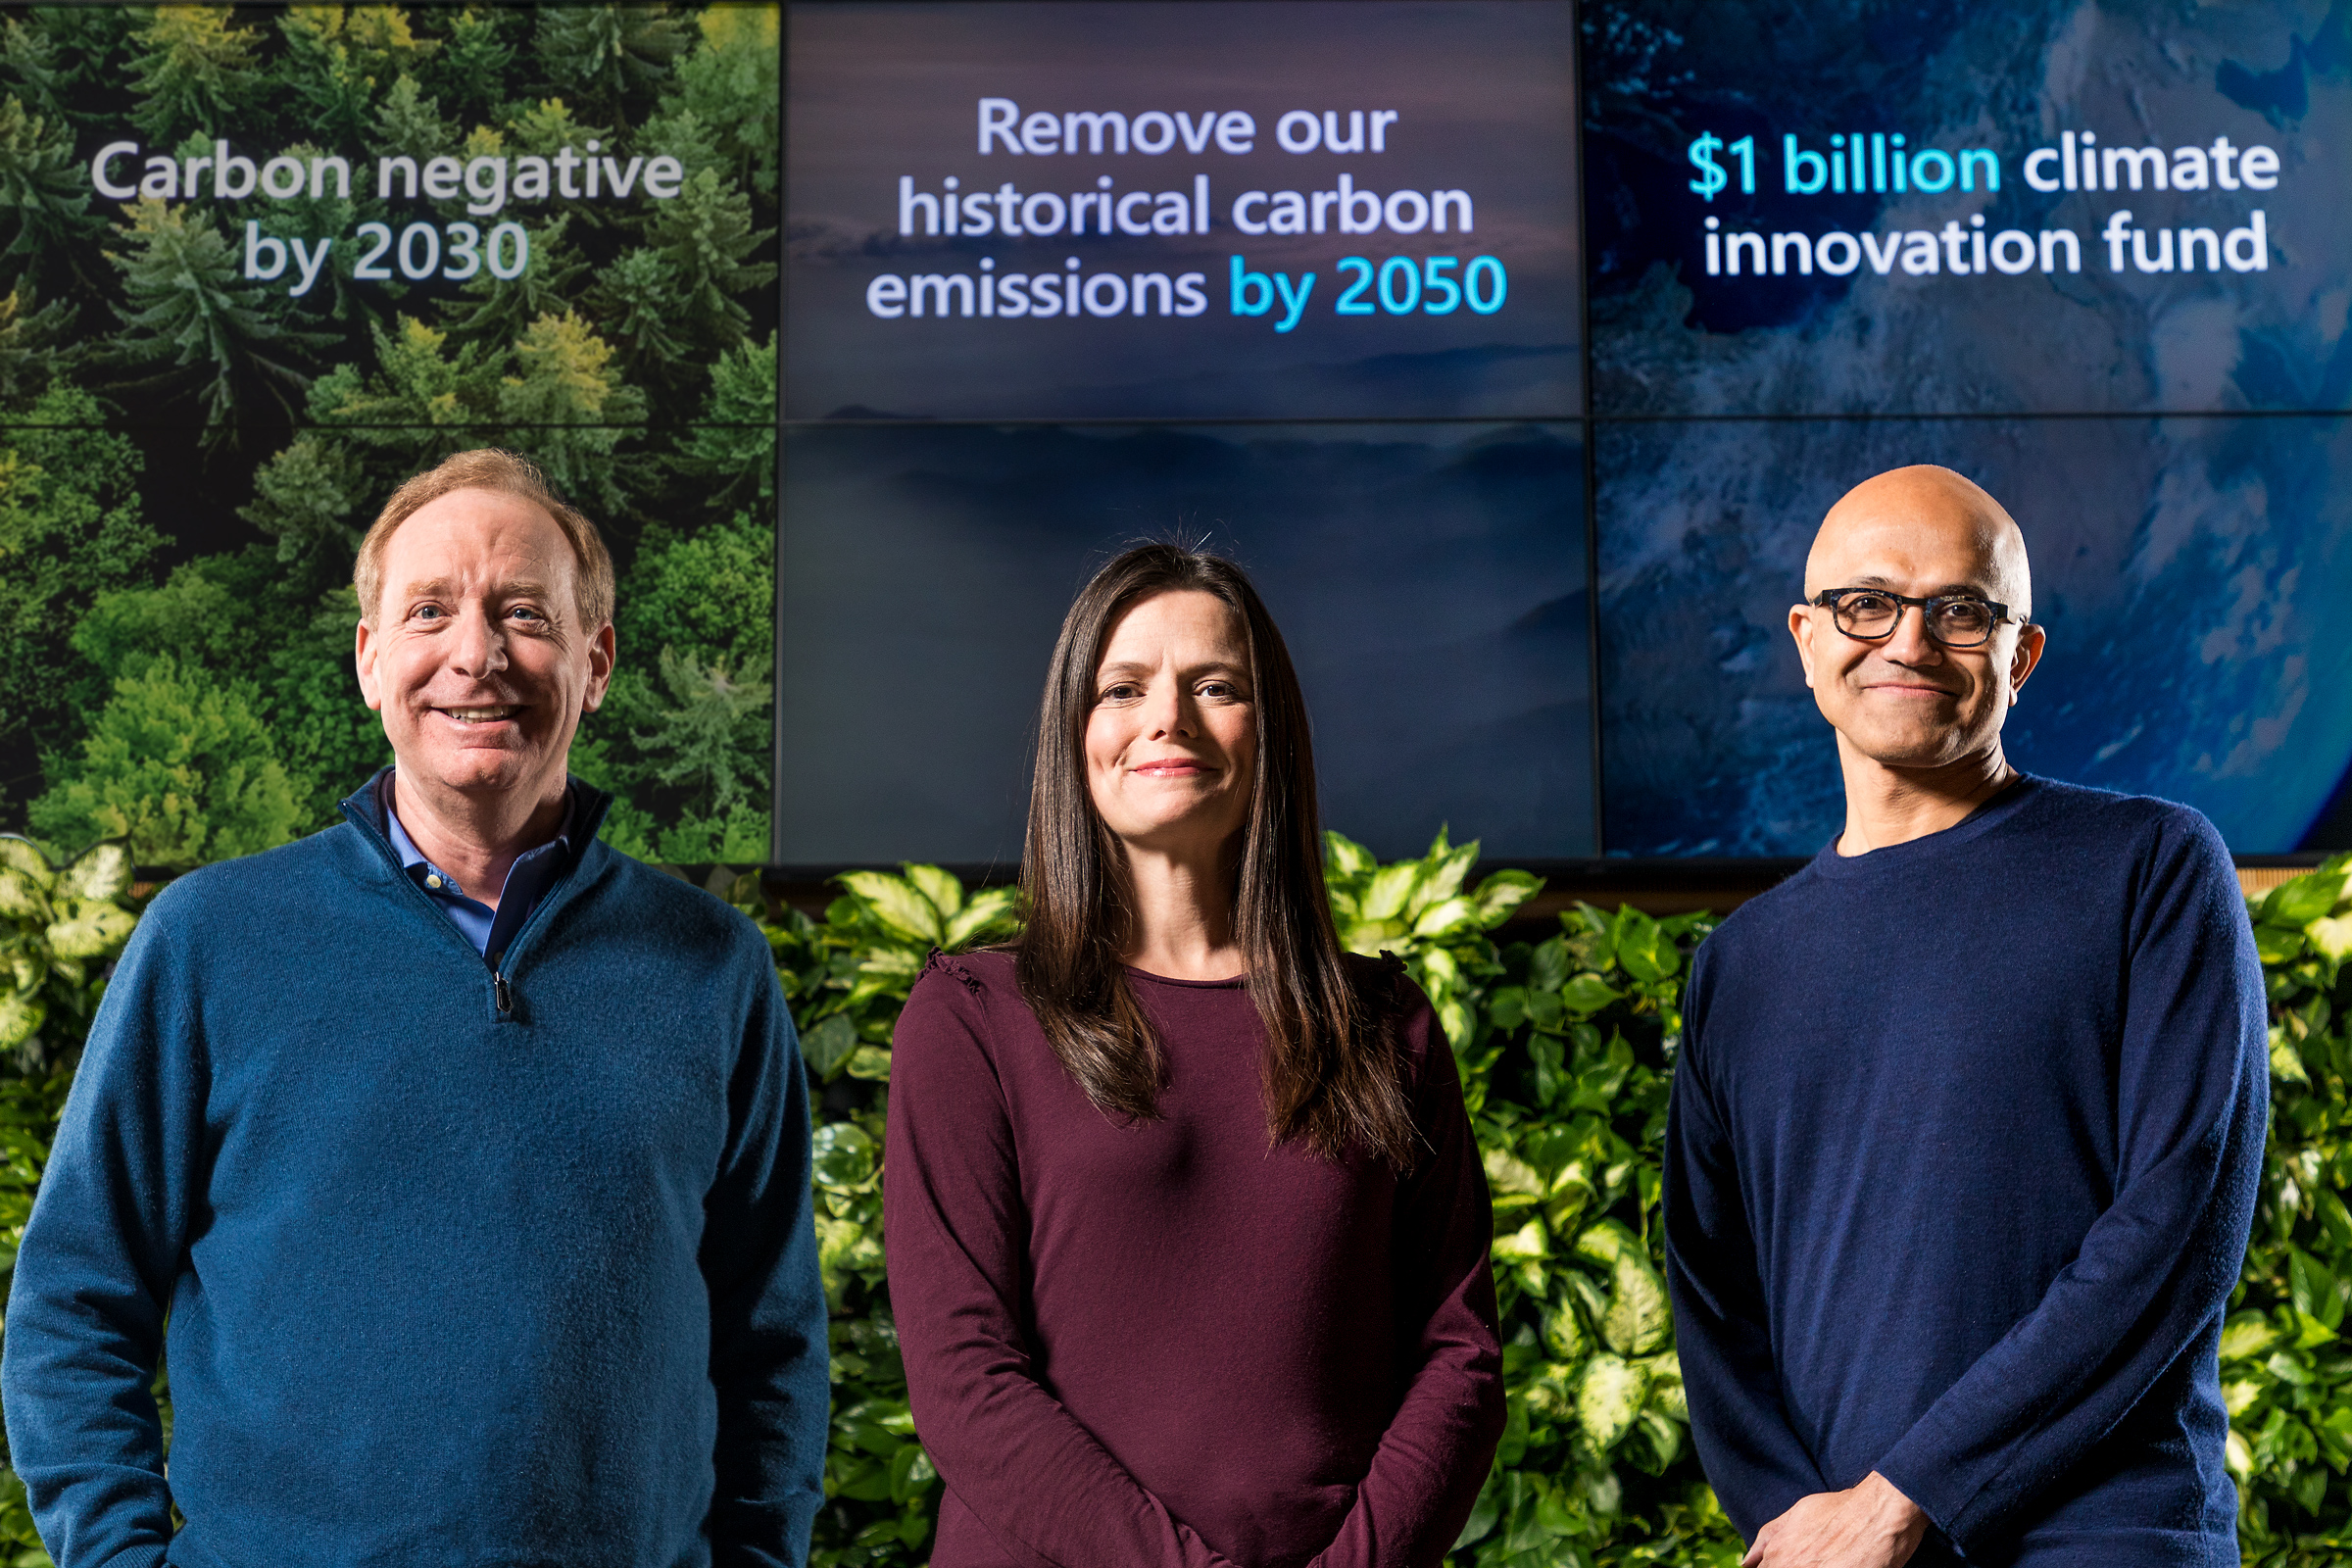 Microsoft President Brad Smith, Chief Financial Officer Amy Hood and CEO Satya Nadella